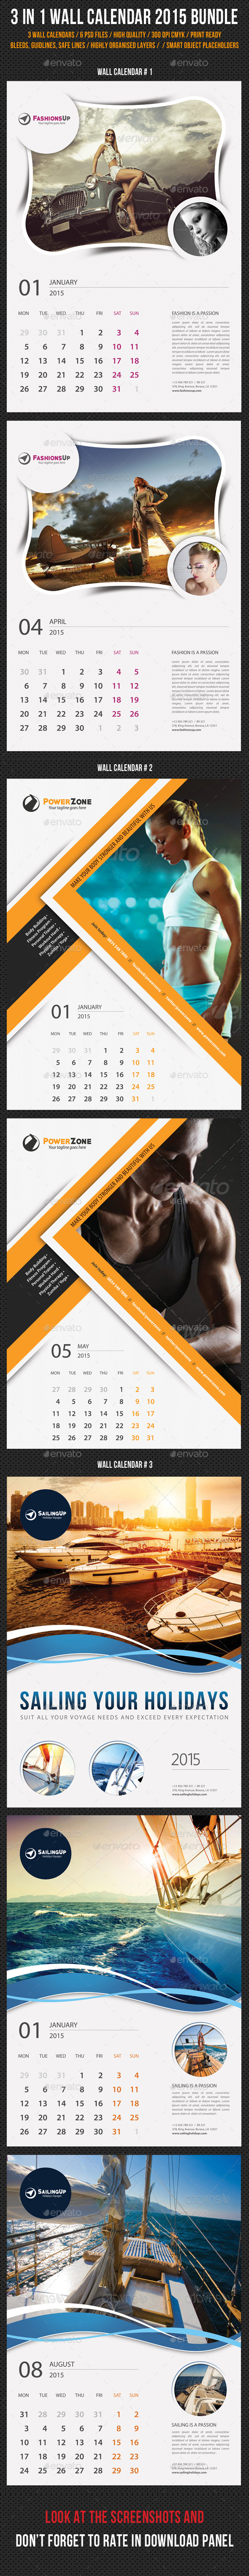 GraphicRiver 3 in 1 Wall Calendar 2015 Bundle V05 9559165